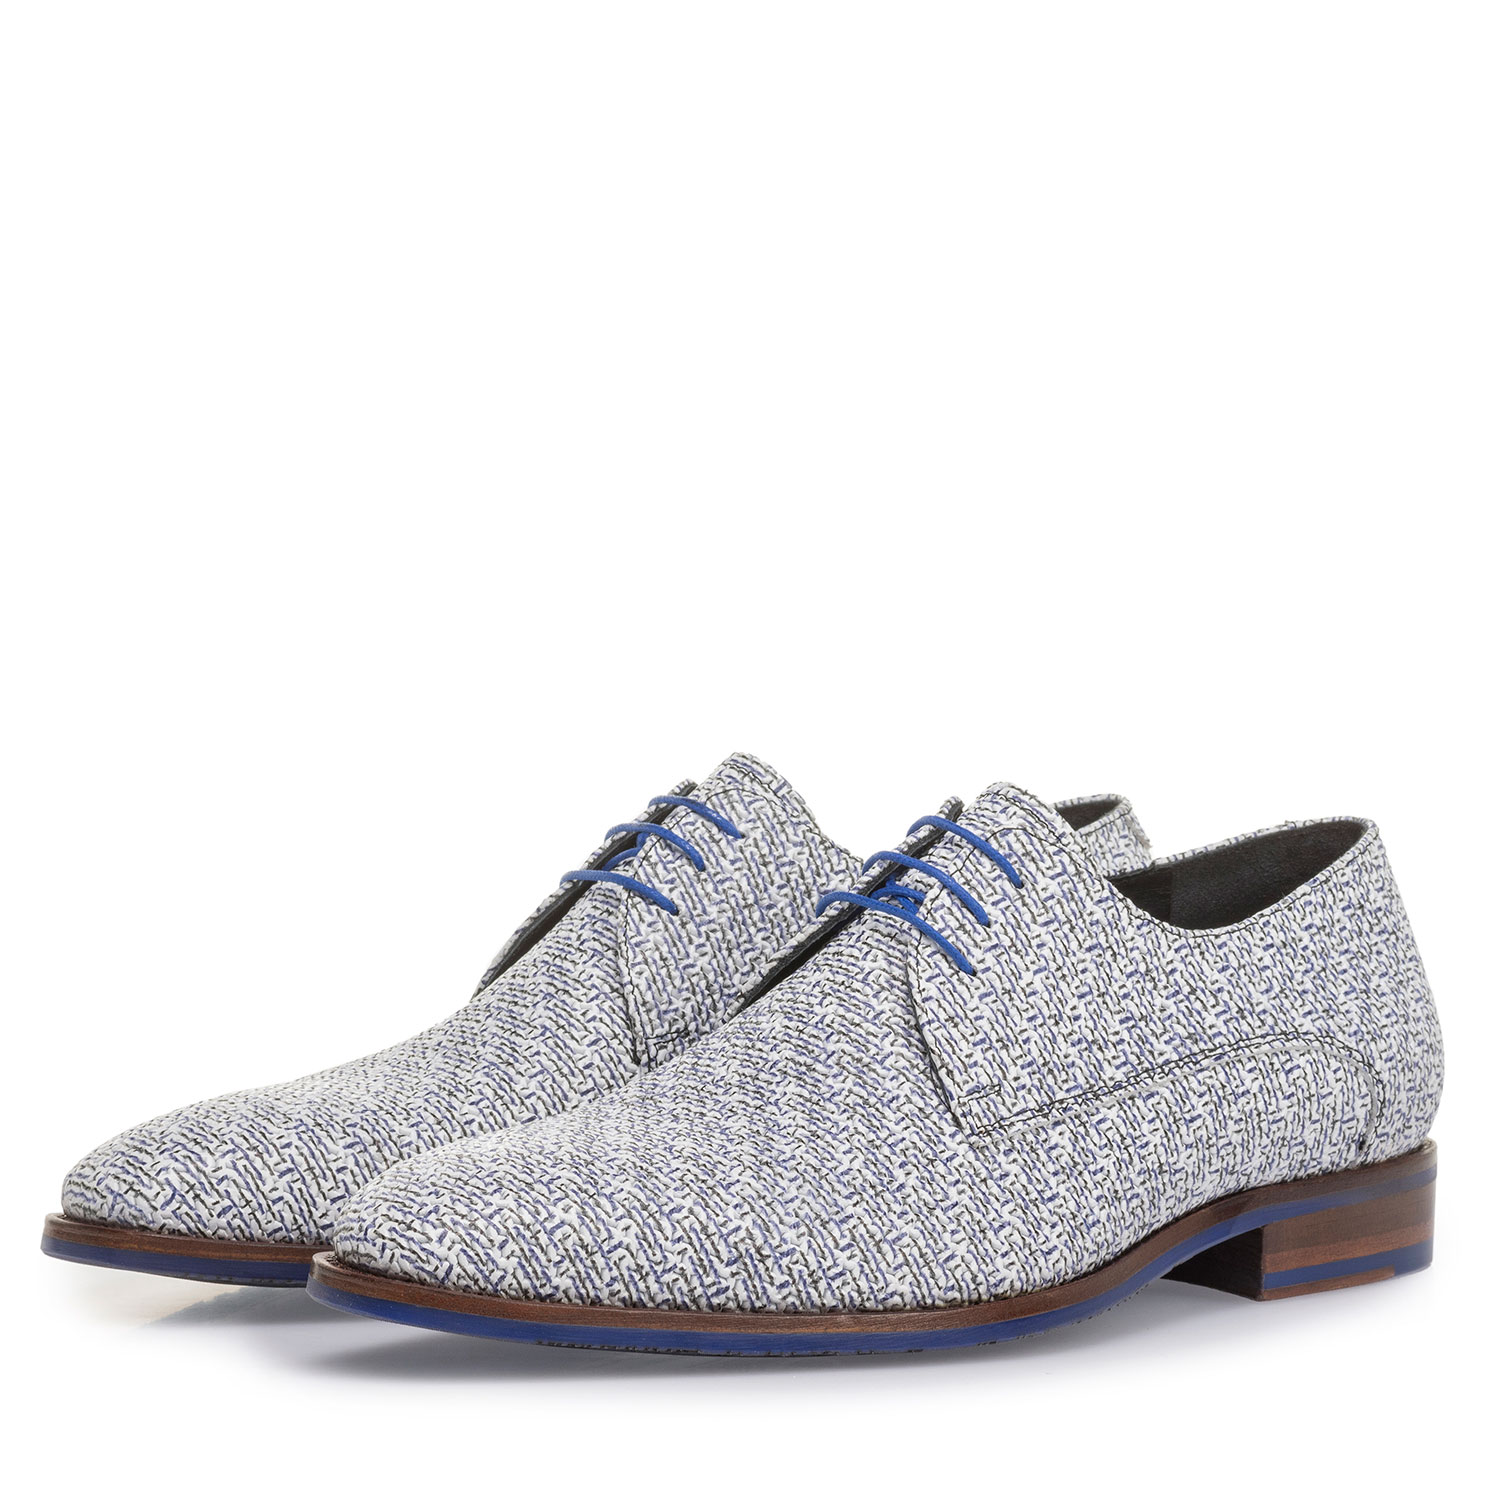 18346/00 - White leather lace shoe with blue print